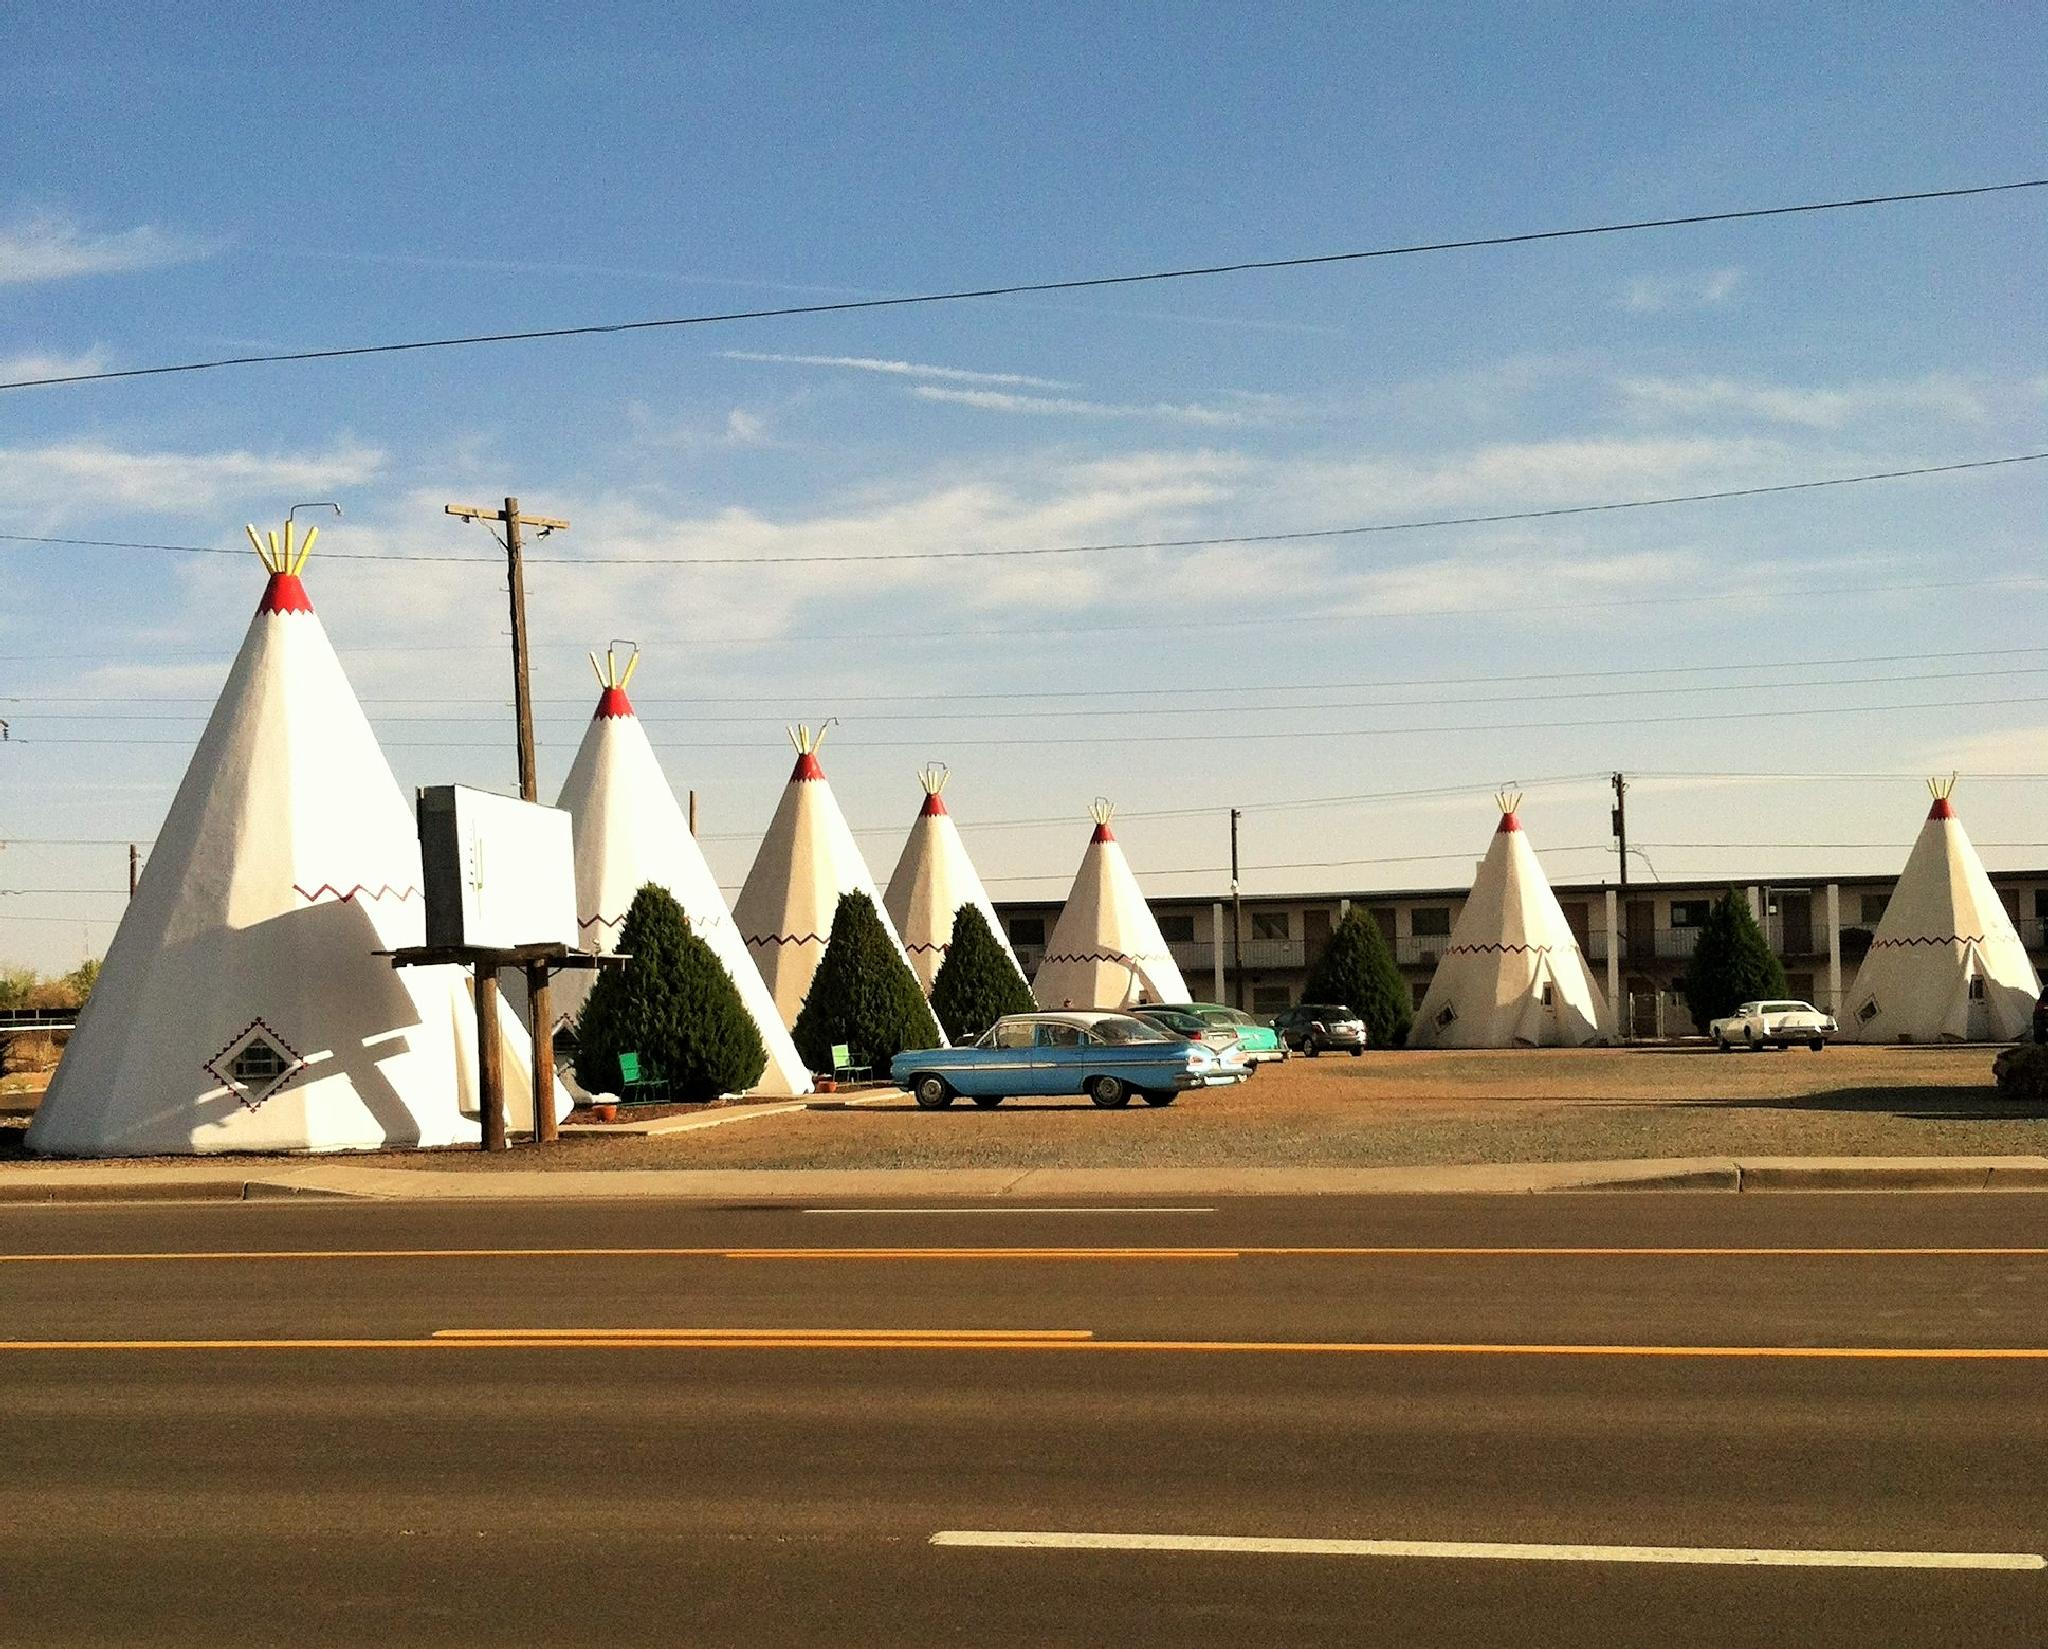 The Wigwam Motel Route 66 Arizona by Floralzoom